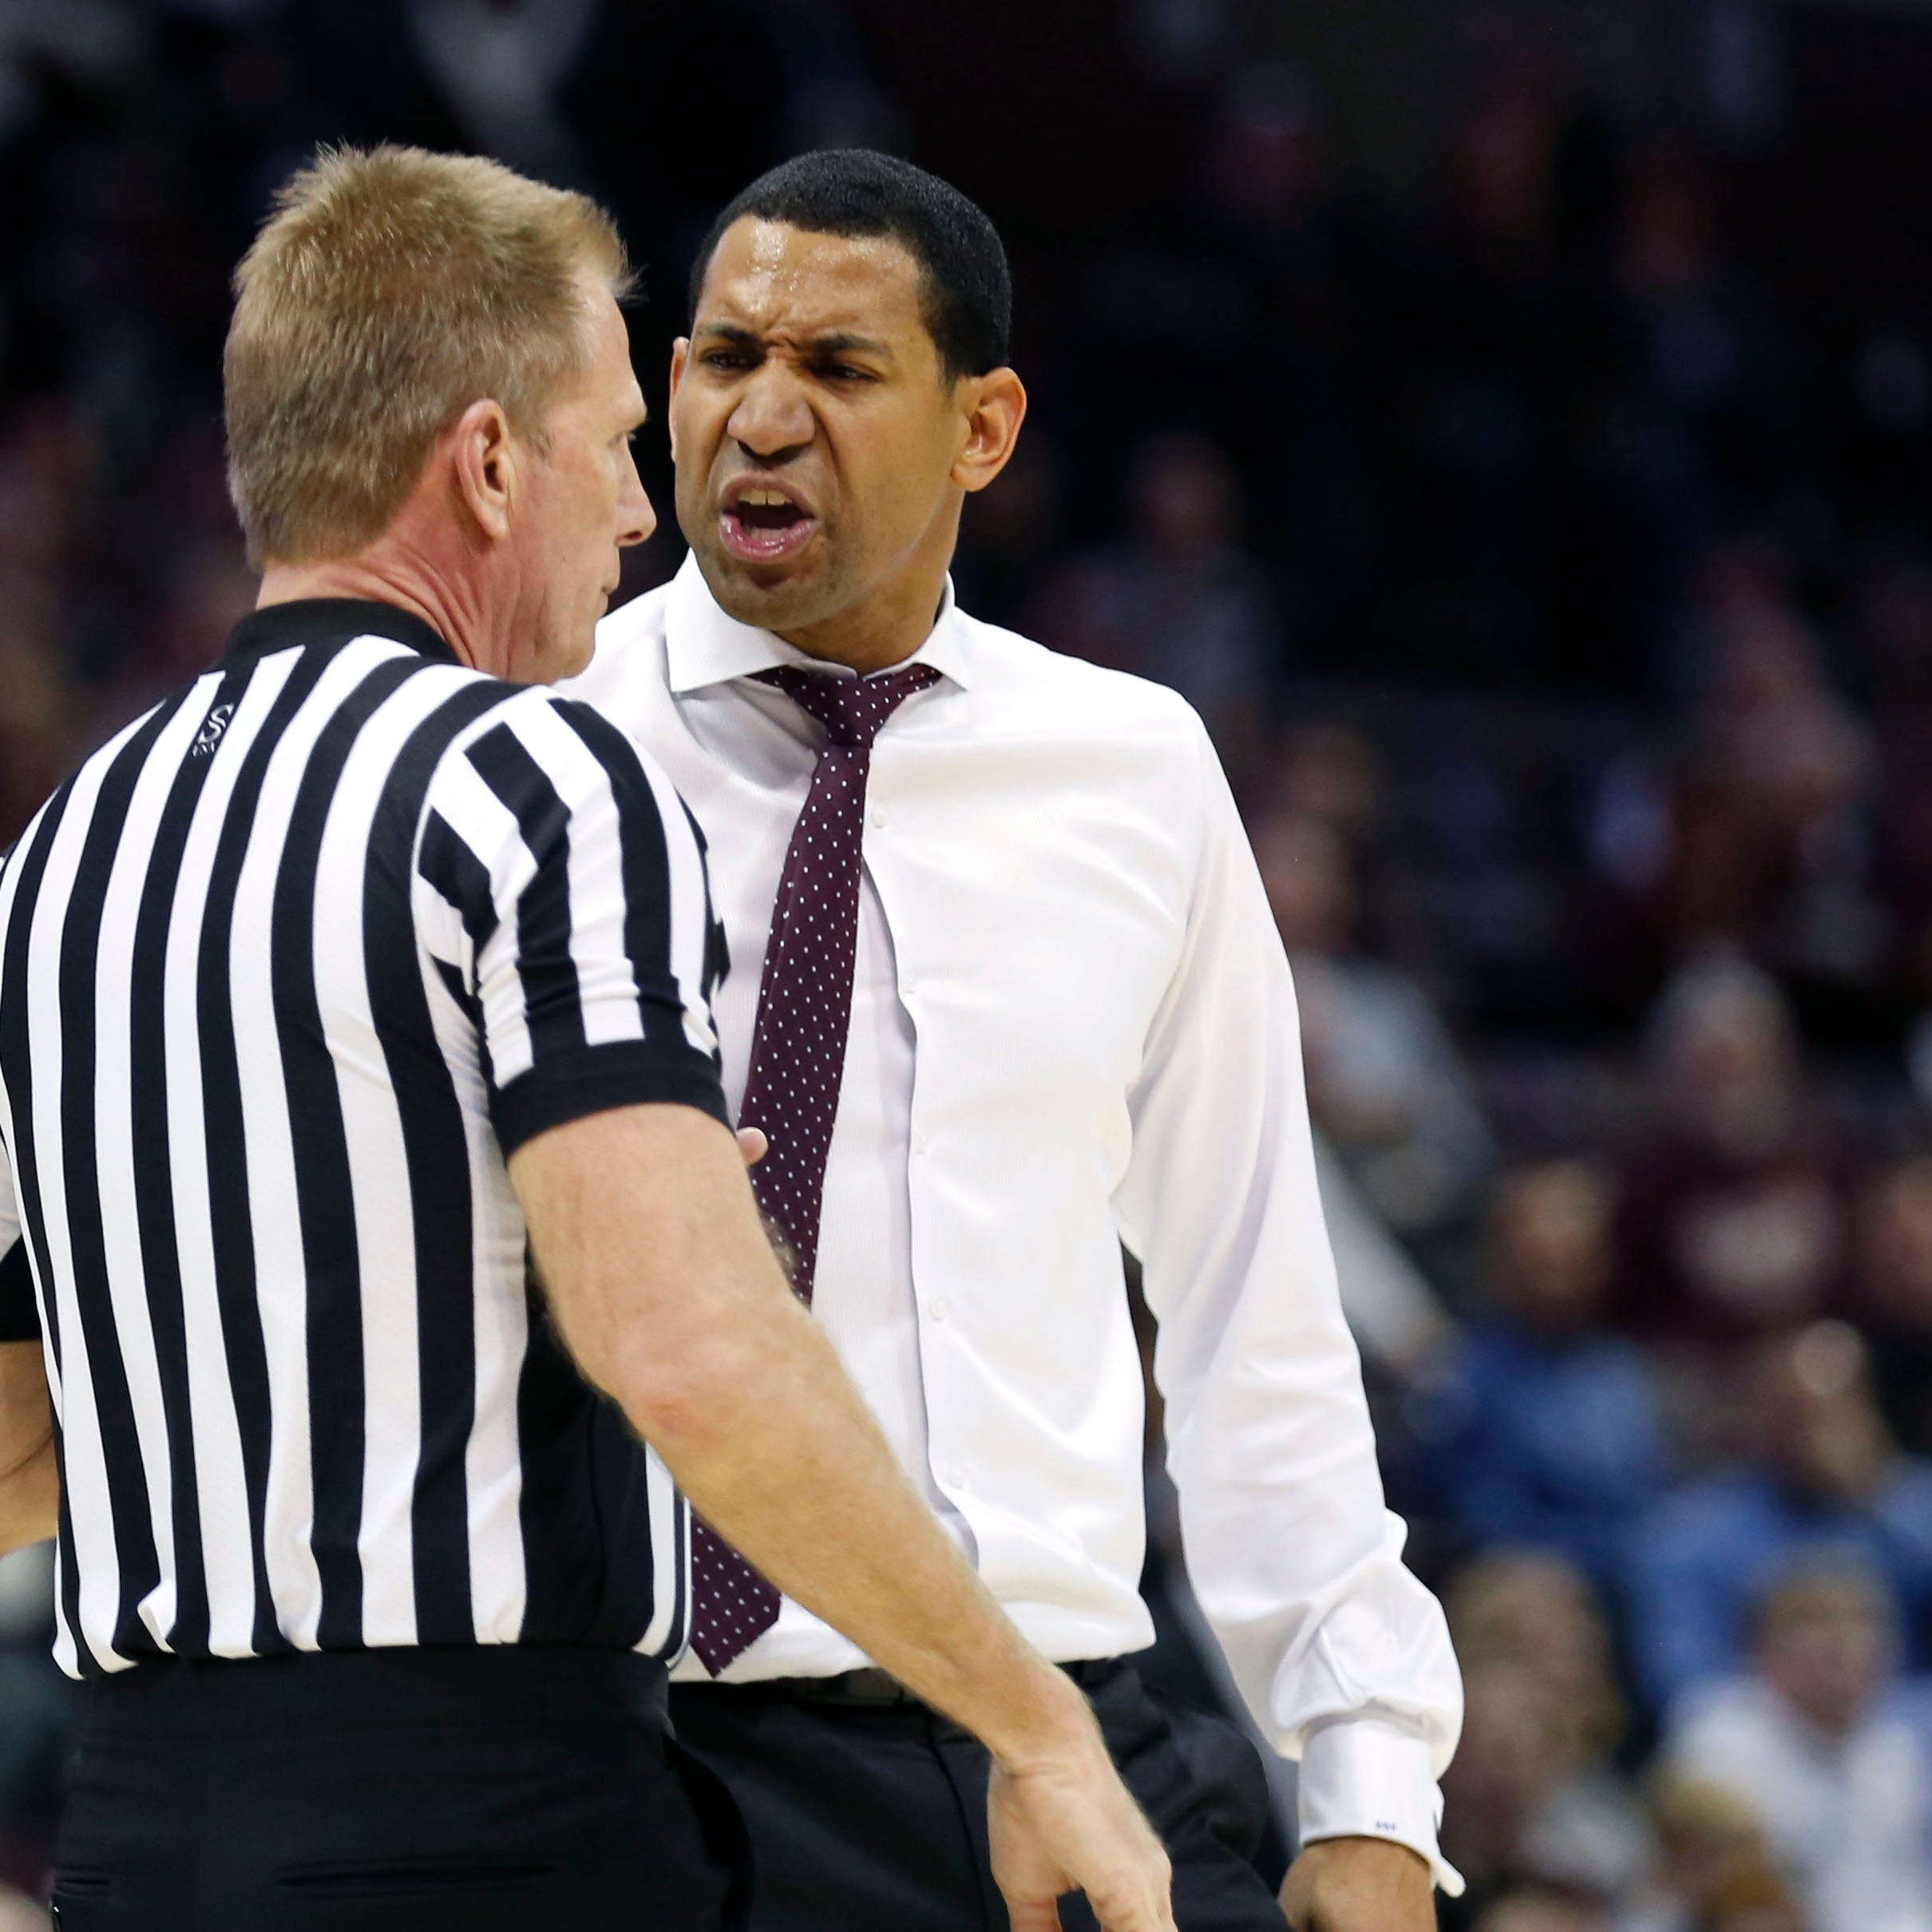 Missouri State head coach Dana Ford becomes latest Valley coach to have run-in with officials